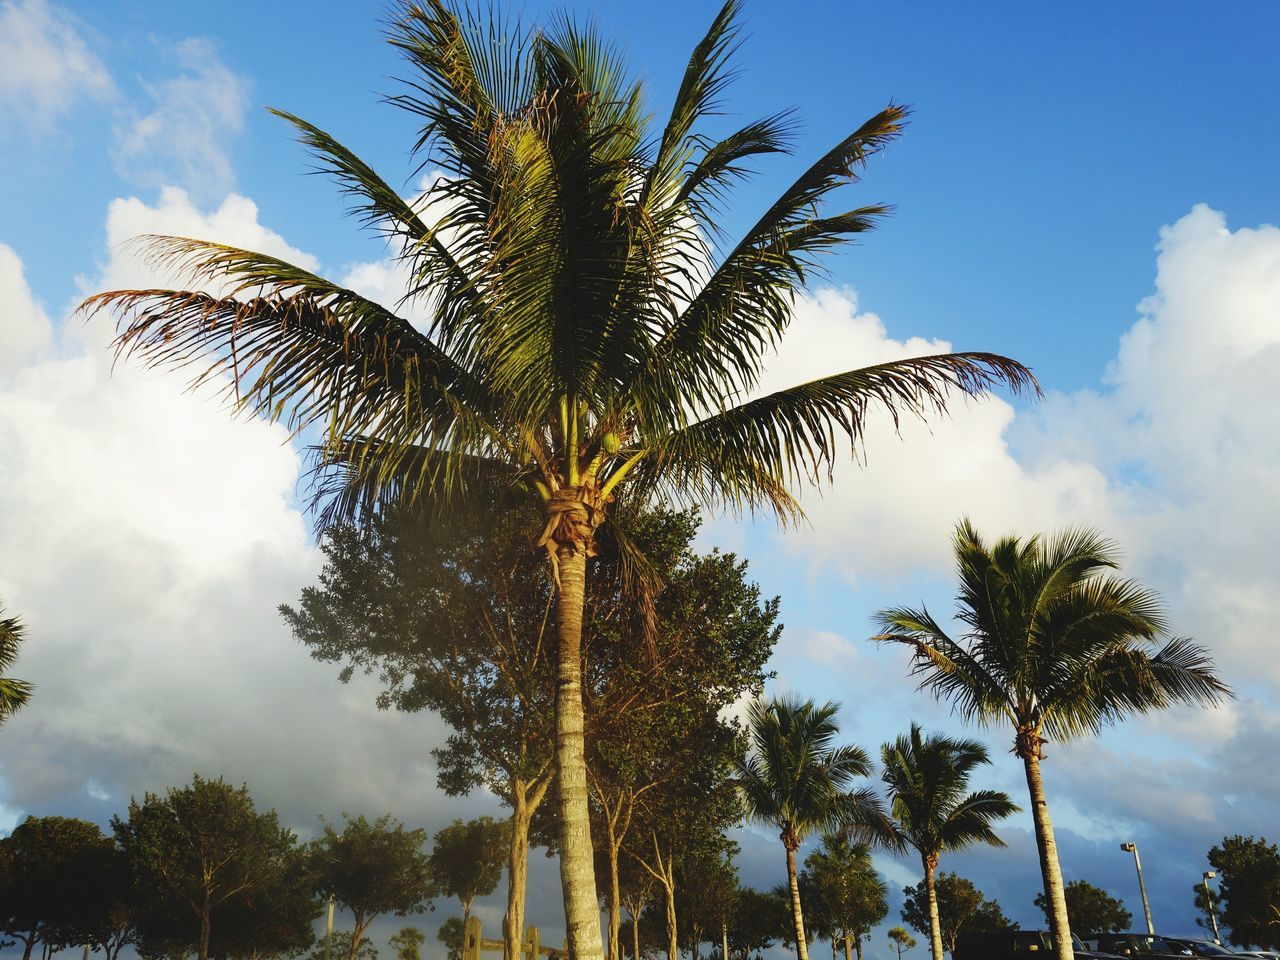 Palm Tree Tree Low Angle View Sky Tree Trunk Growth Beauty In Nature Nature Outdoors Cloud - Sky Day No People Palm Frond